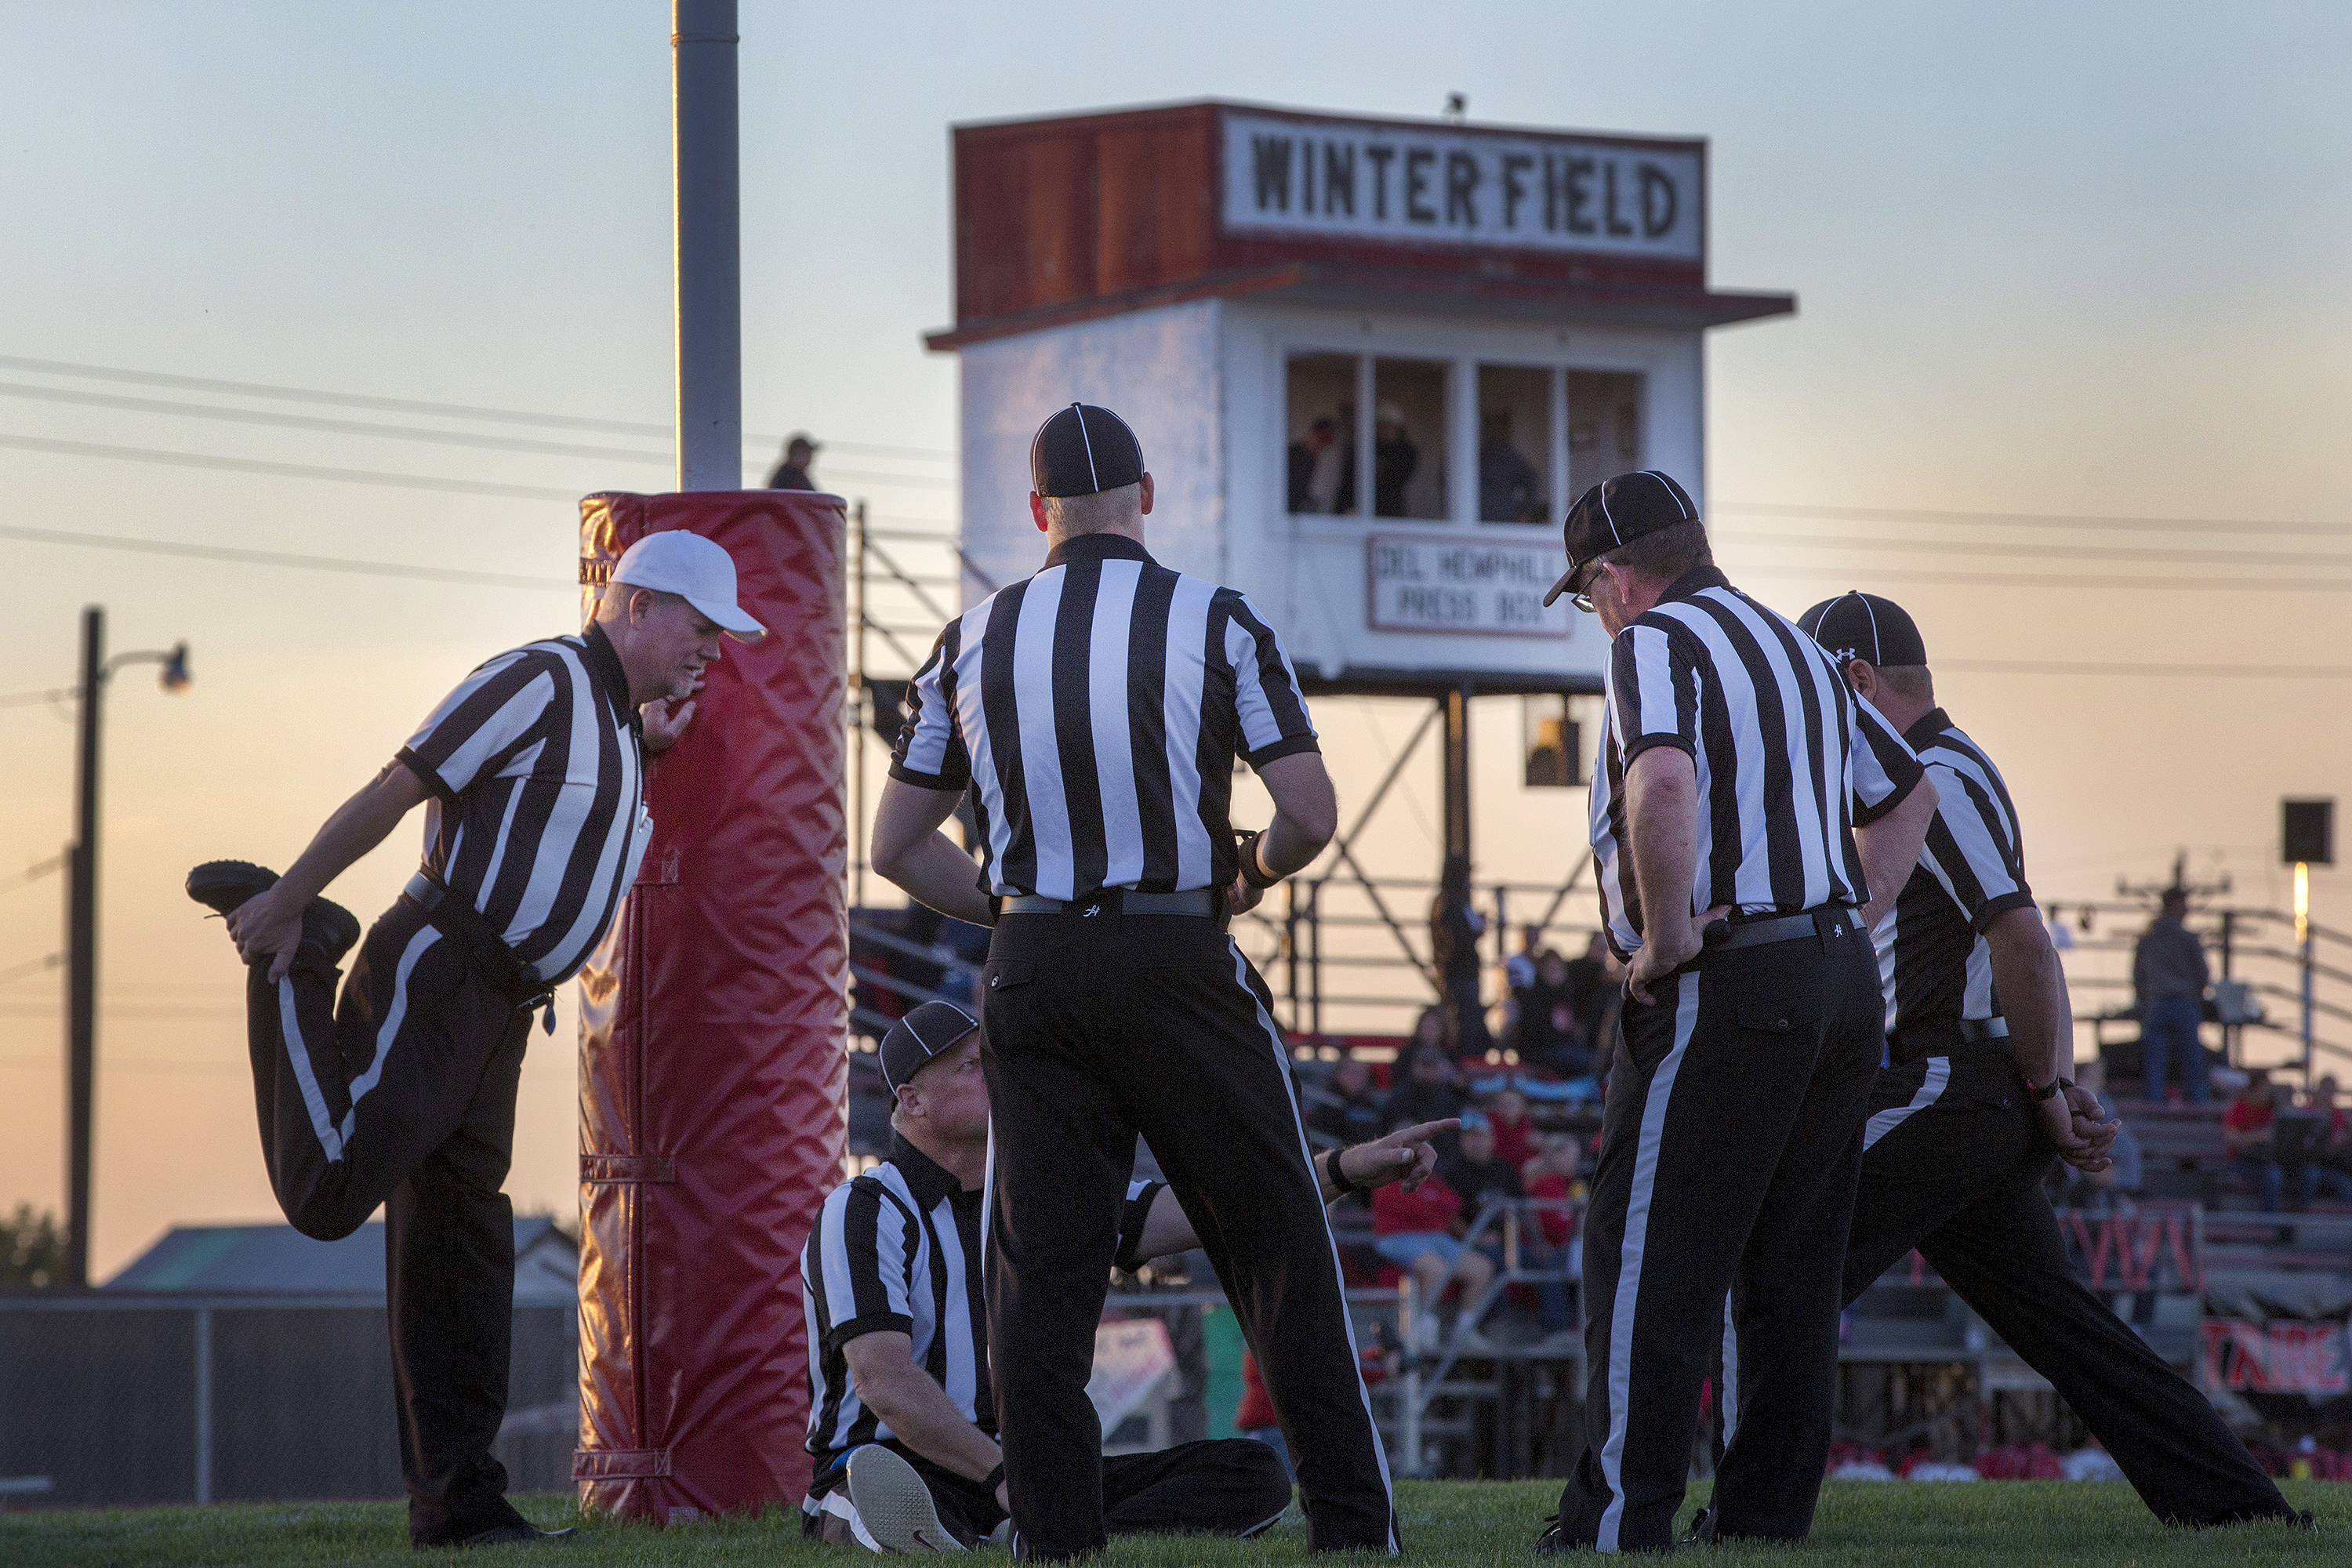 <p>Referees warm up ahead of a Sept. 21 high school football match in Strasburg. The Indians were hosting the Limon Badgers.</p>